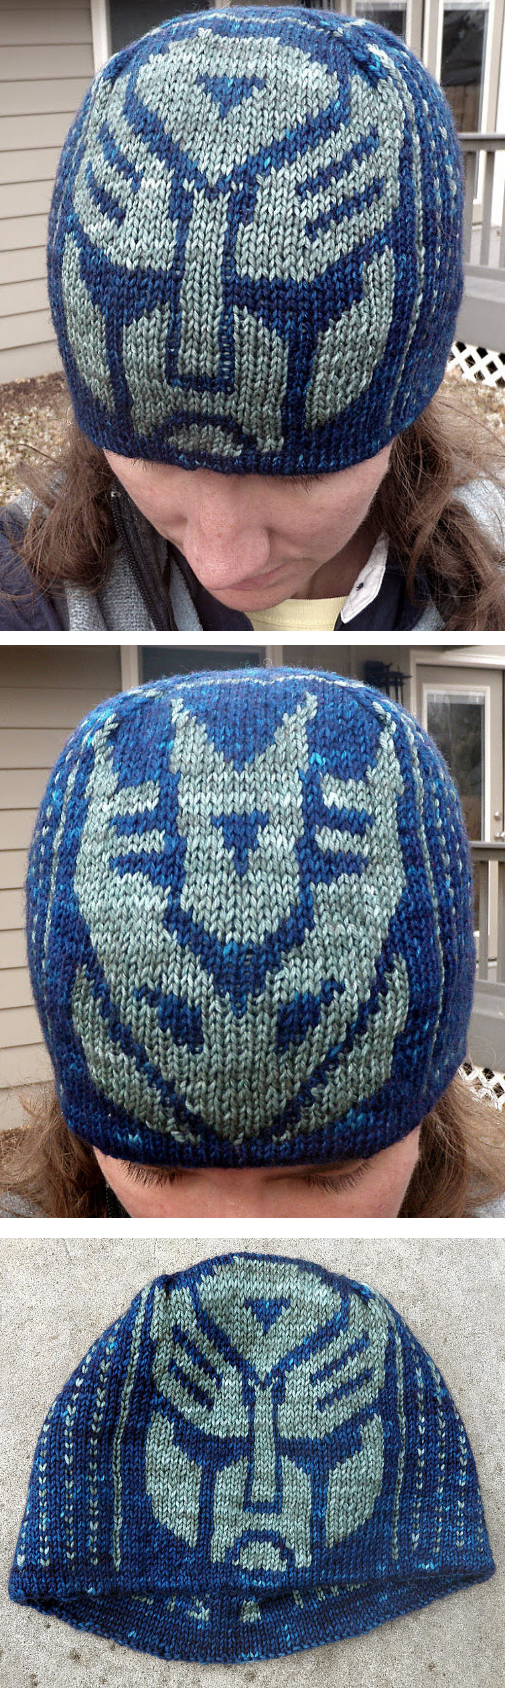 Free knitting pattern for transformers hat this hat pattern free knitting pattern for transformers hat this hat pattern comes with autobot and decepticon charts bankloansurffo Gallery